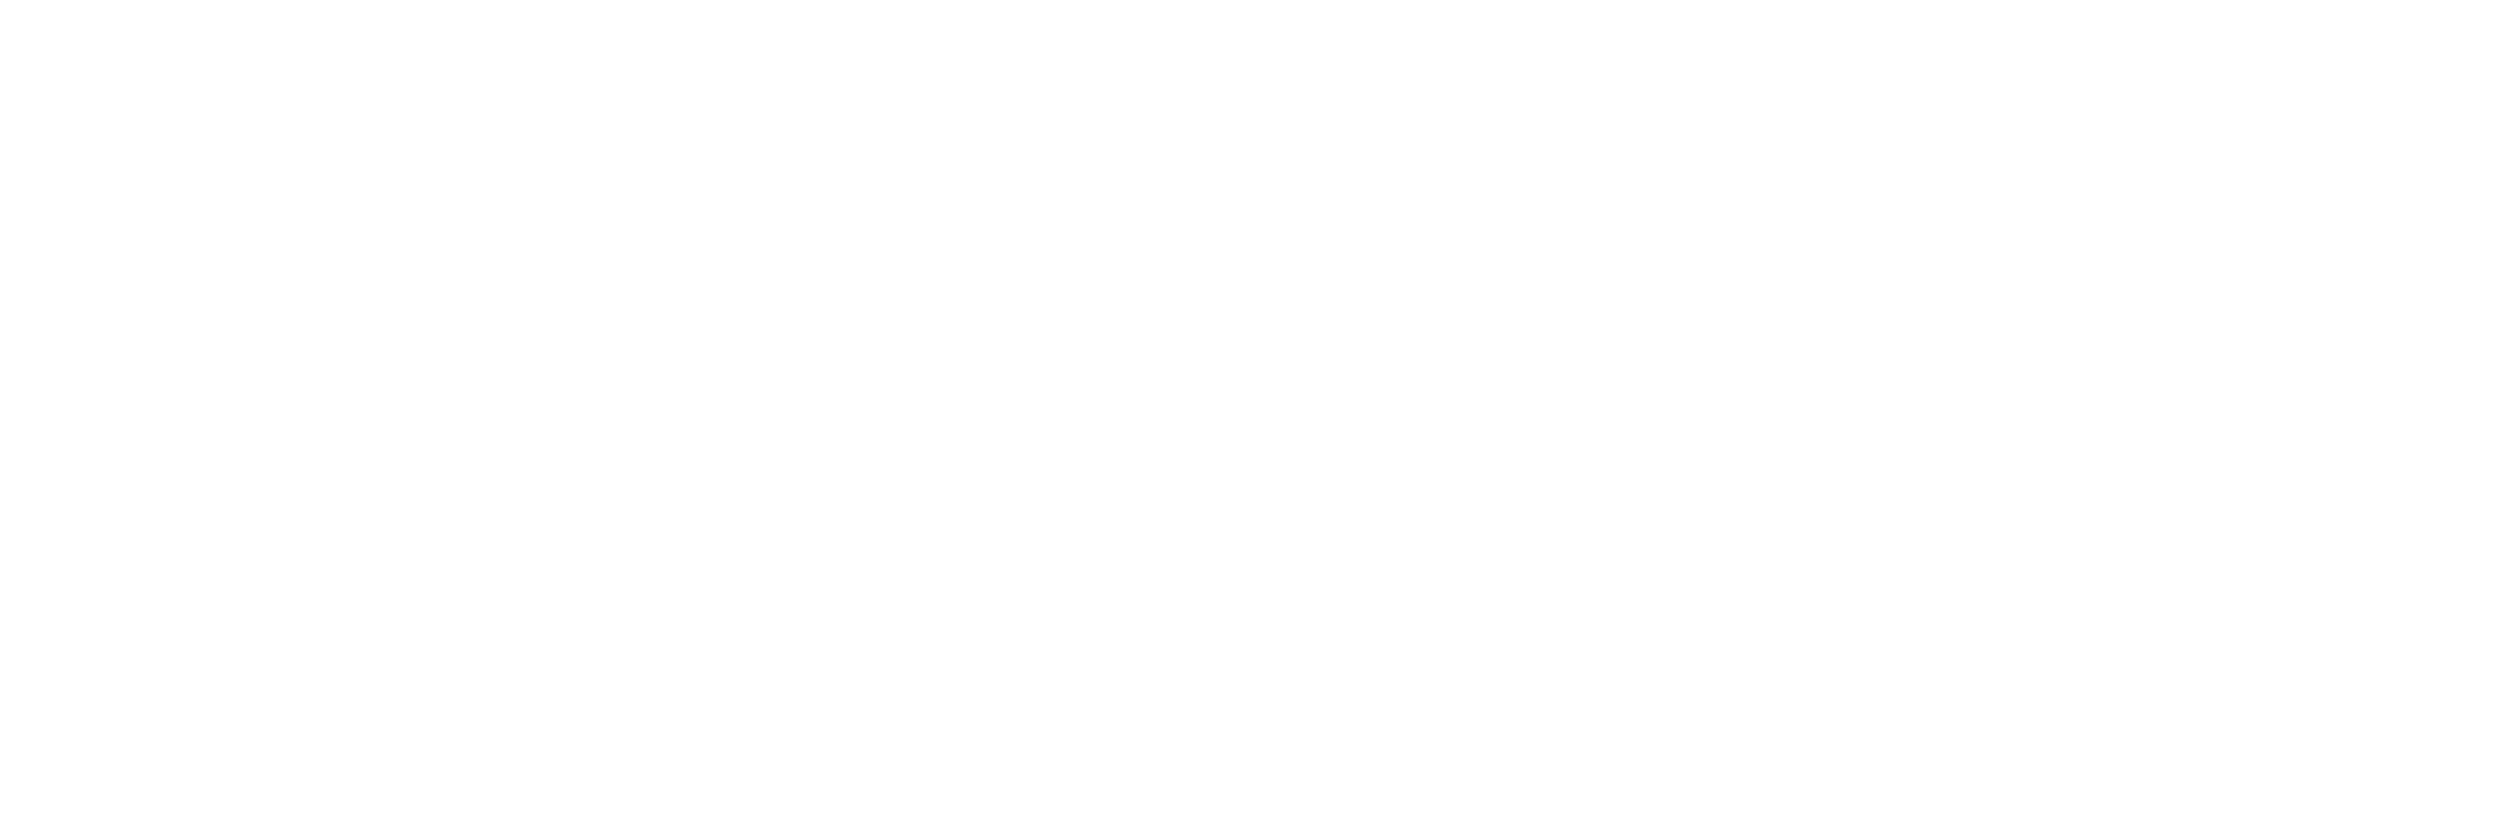 SMARTIVE_marchio_b-n-09.png